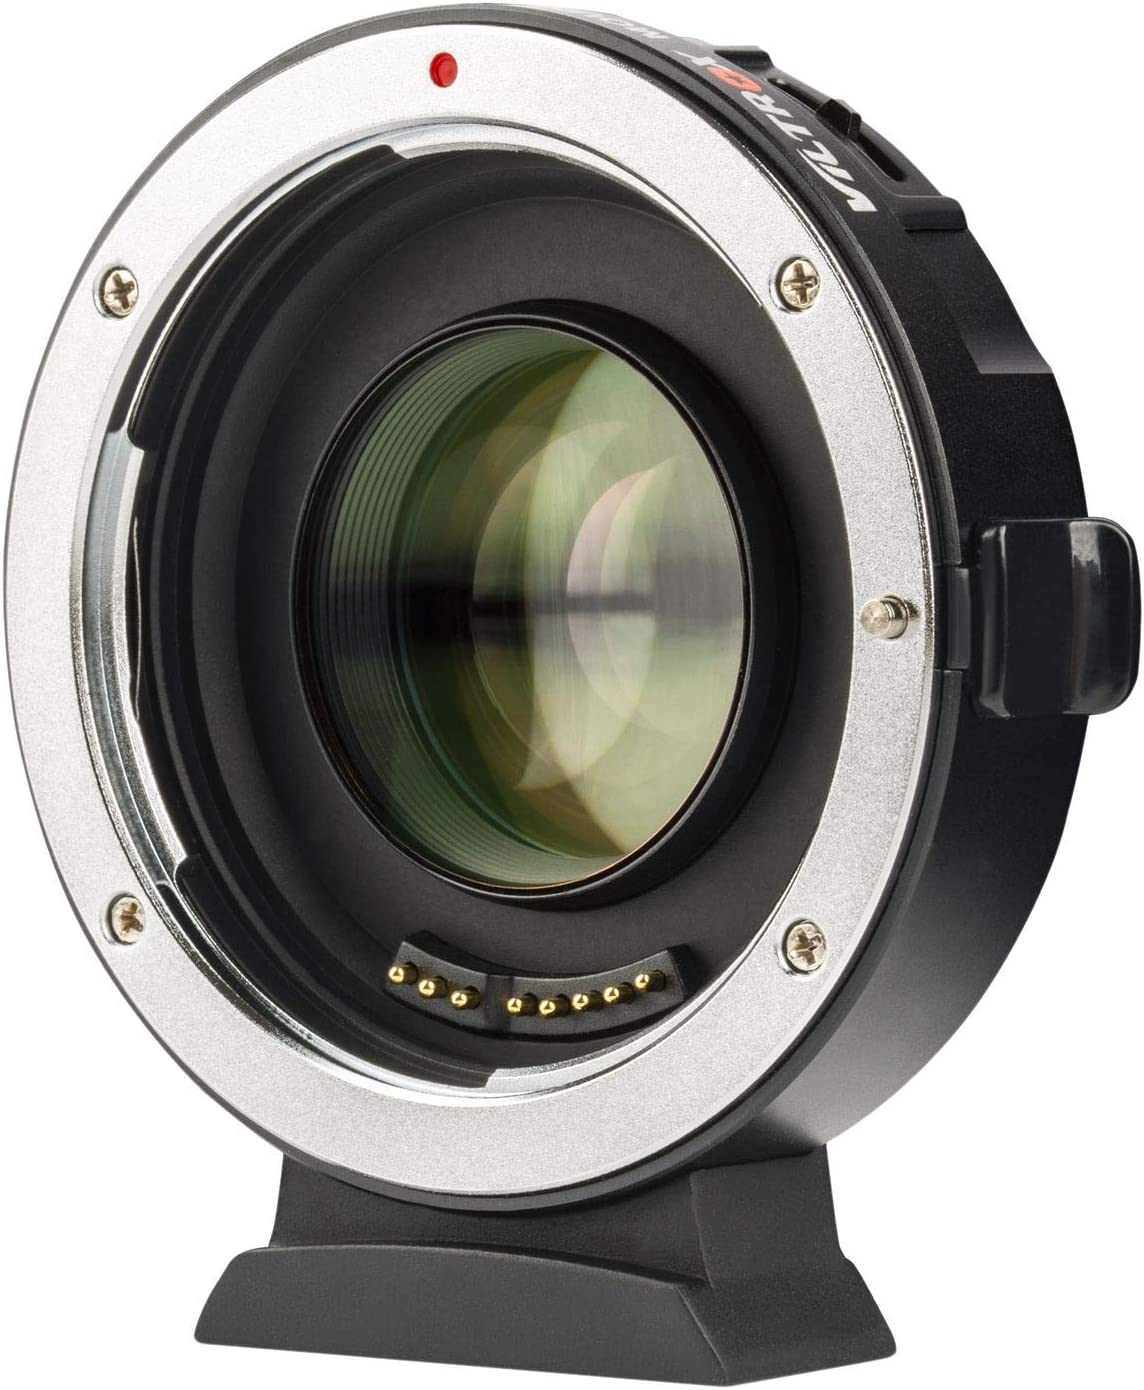 MFT Lens Adapter EF-M2II Auto-Focus Ring Ranking TOP3 Control Superior Speed-Booster f